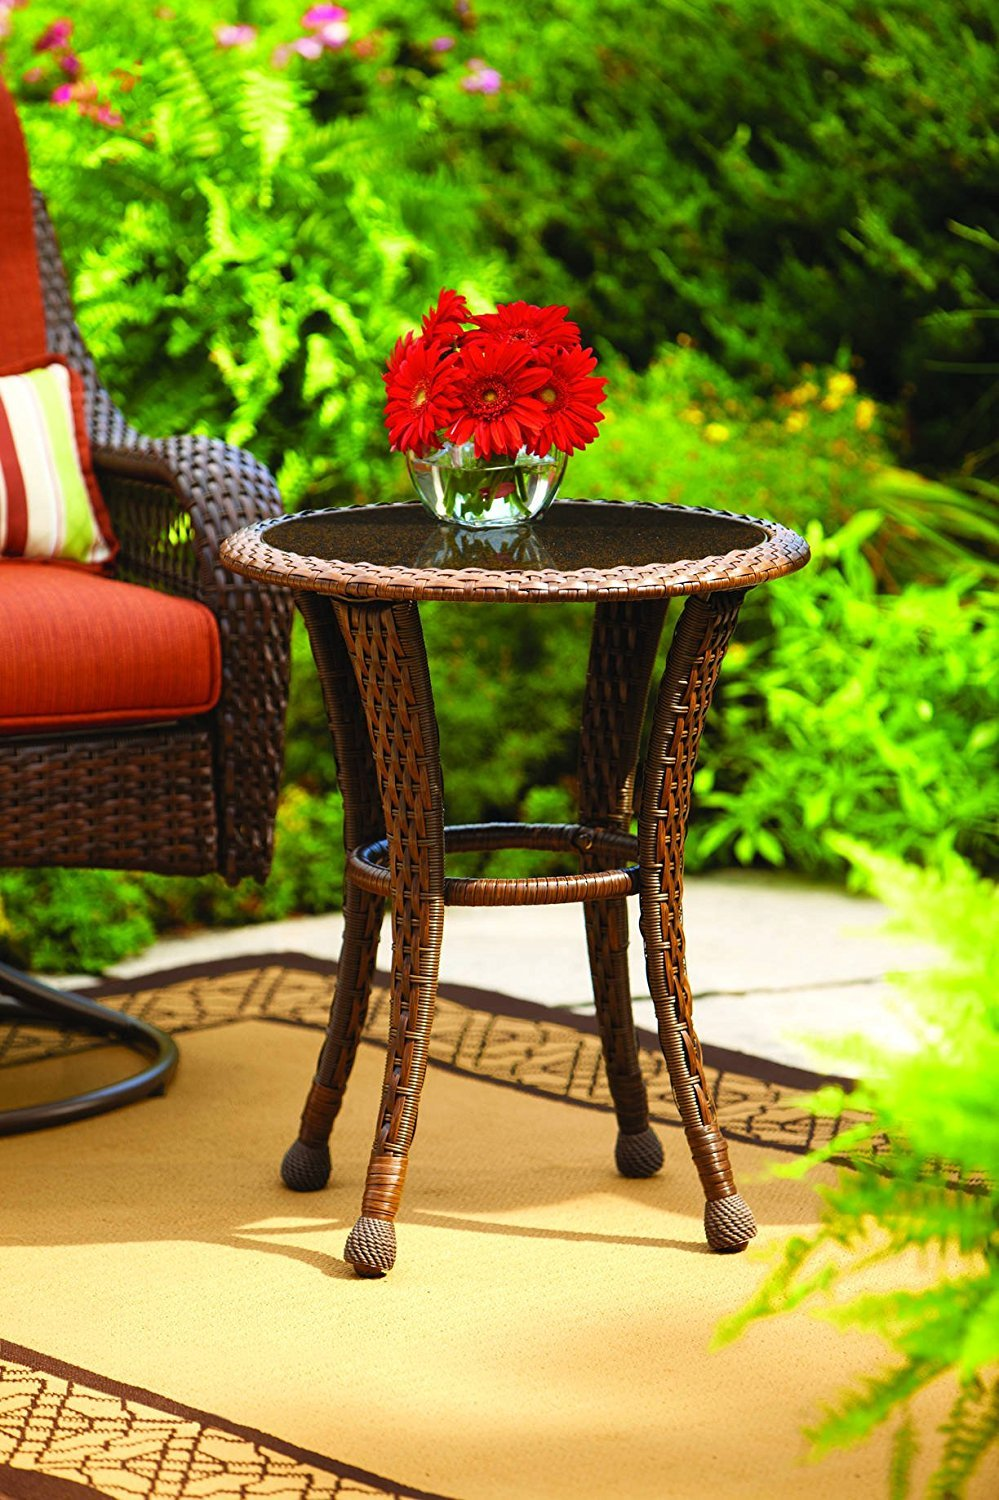 best rated outdoor side tables helpful customer reviews red accent table better homes and gardens azalea ridge wicker round replica iconic furniture ethan allen vintage small